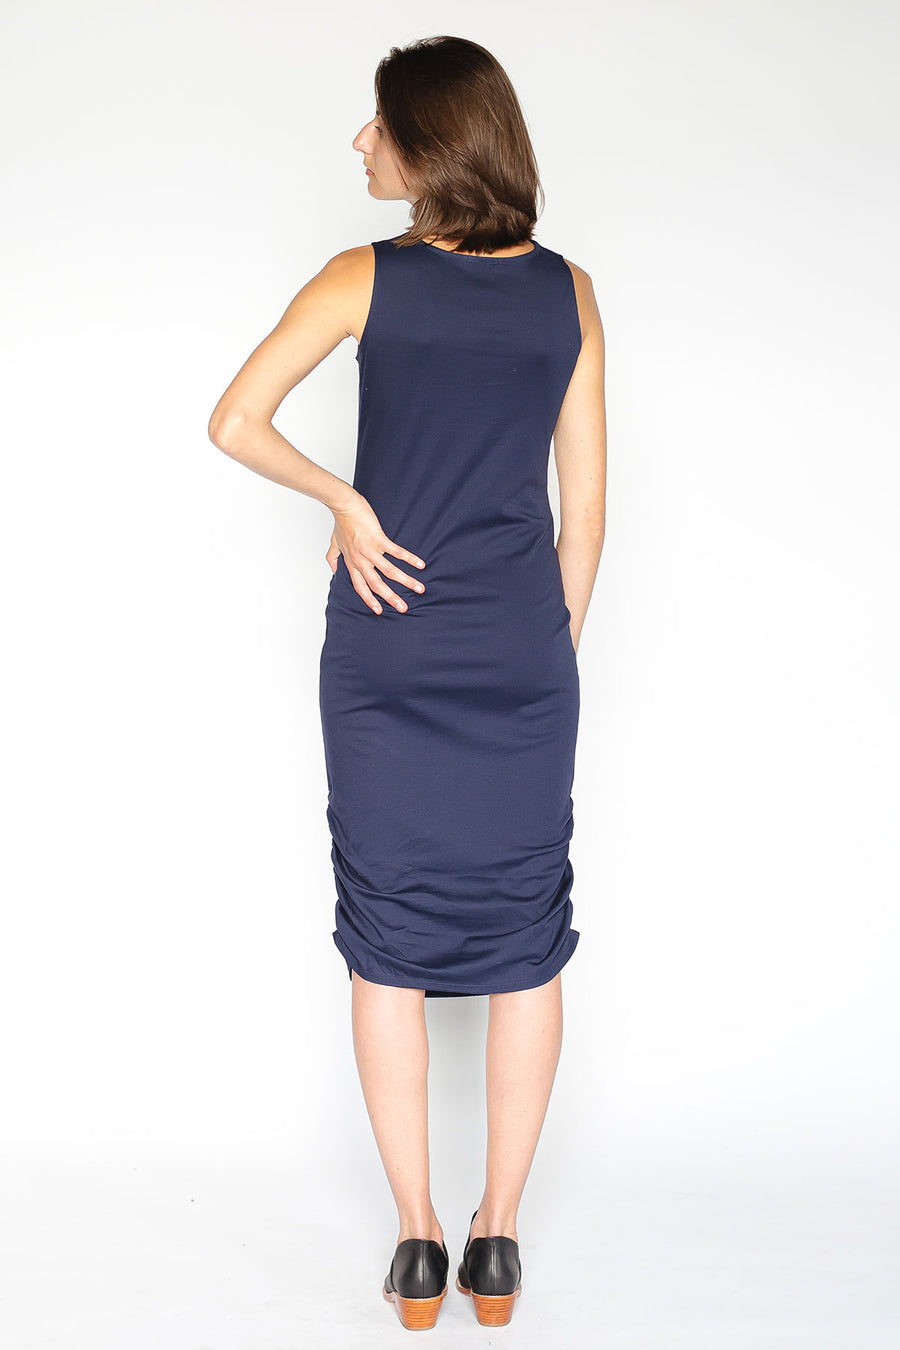 Sleeveless jersey dress in navy